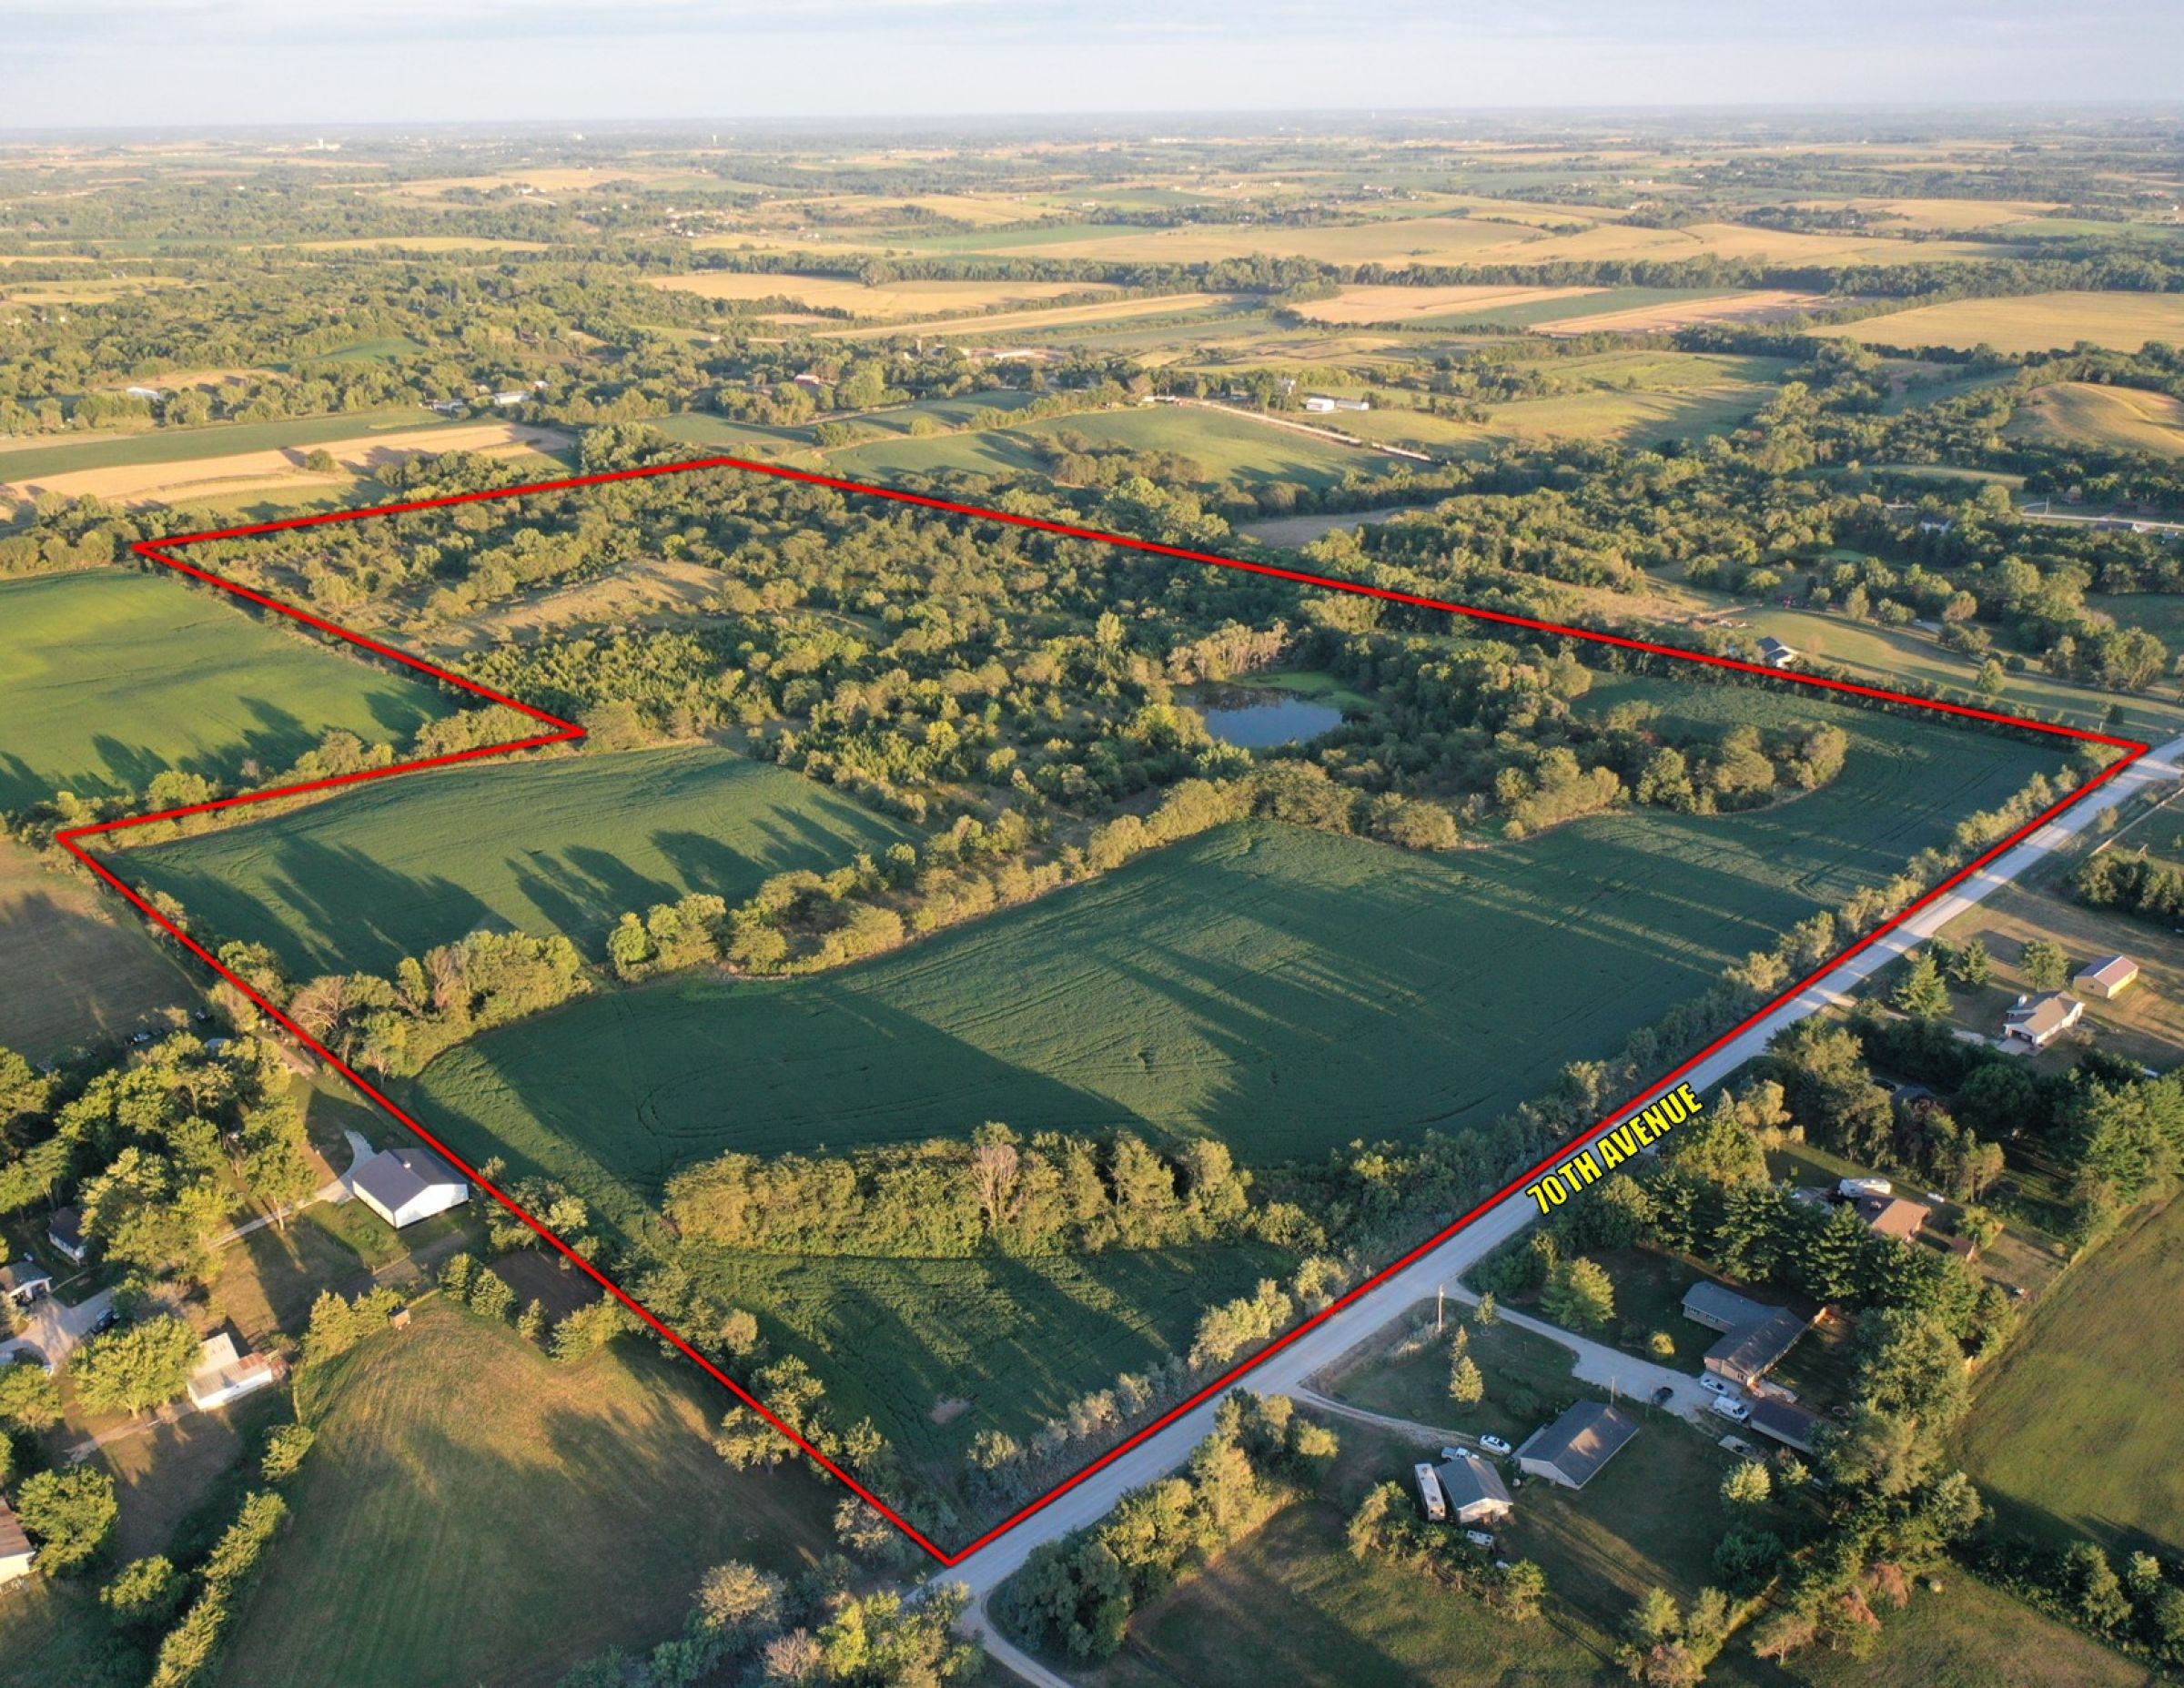 auctions-warren-county-iowa-84-acres-listing-number-15156-0-2020-09-02-050206.jpg